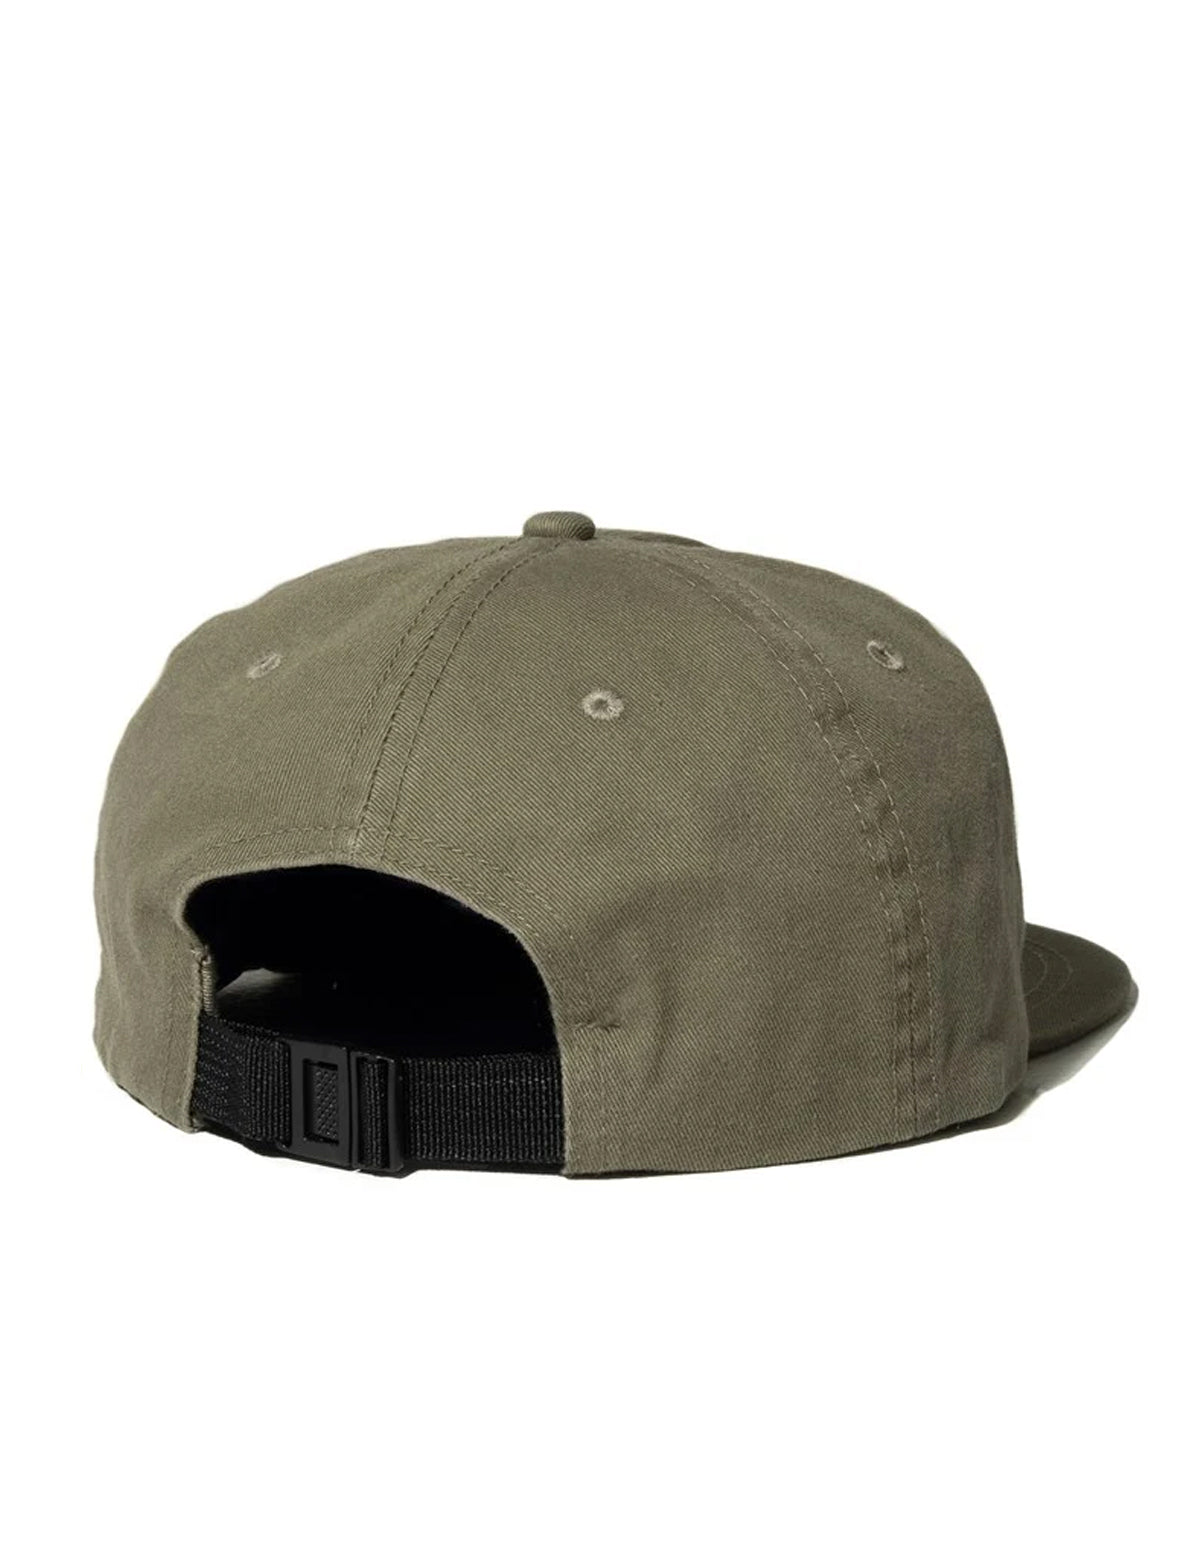 Katin Tides Hat in Olive